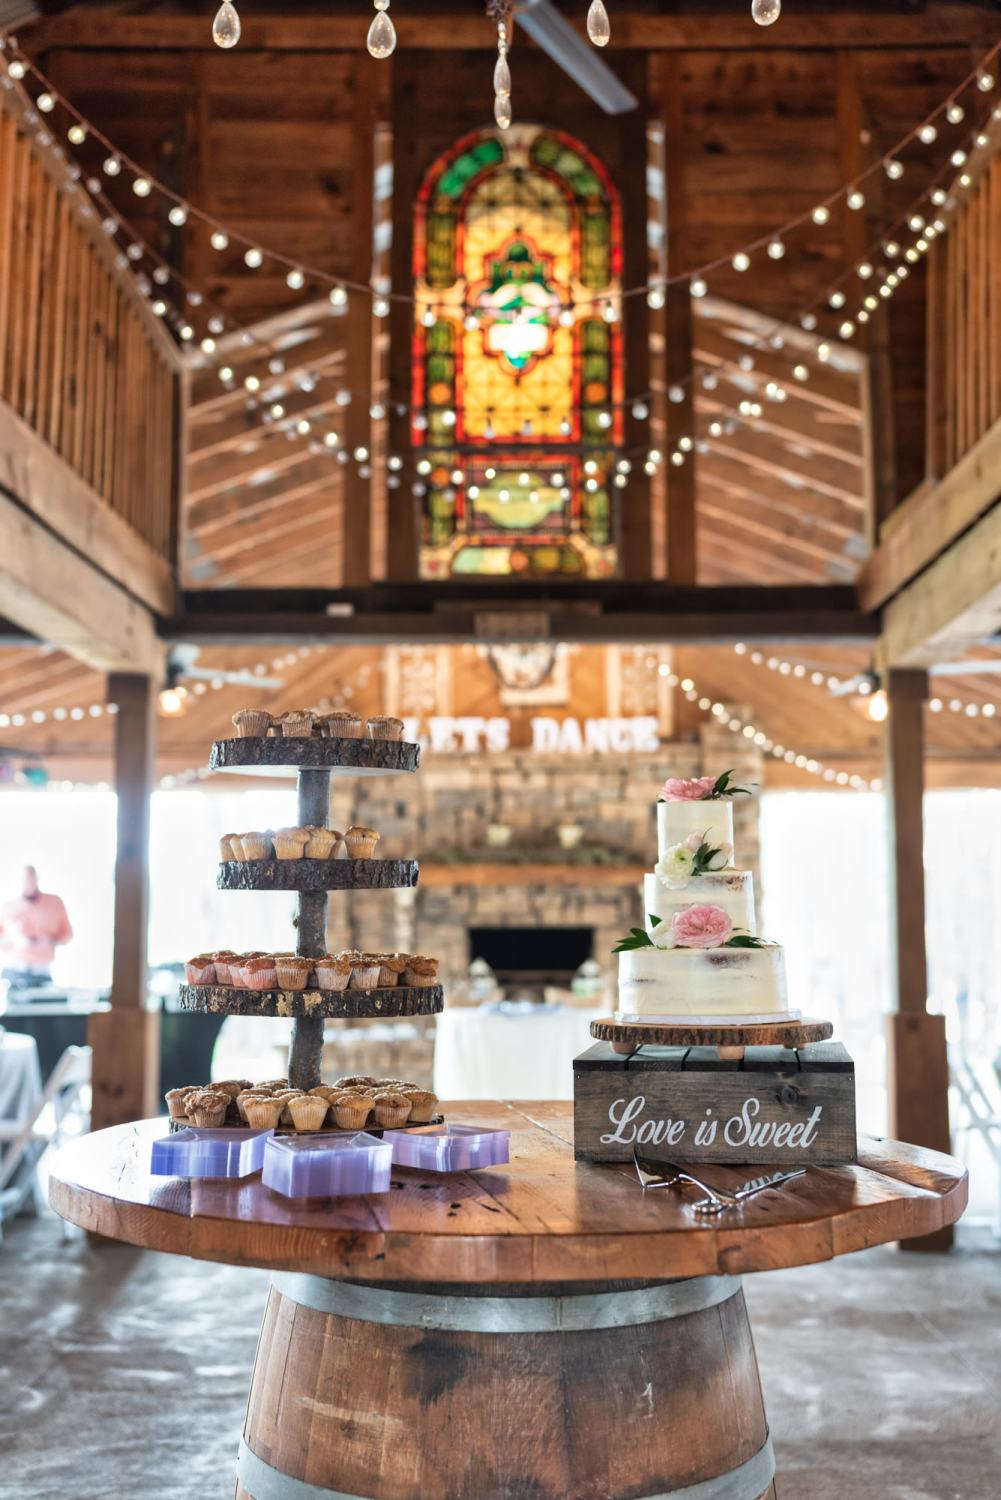 Detail picture of the cake table with stained glass window in the background - Wildhorse at Parker Farms